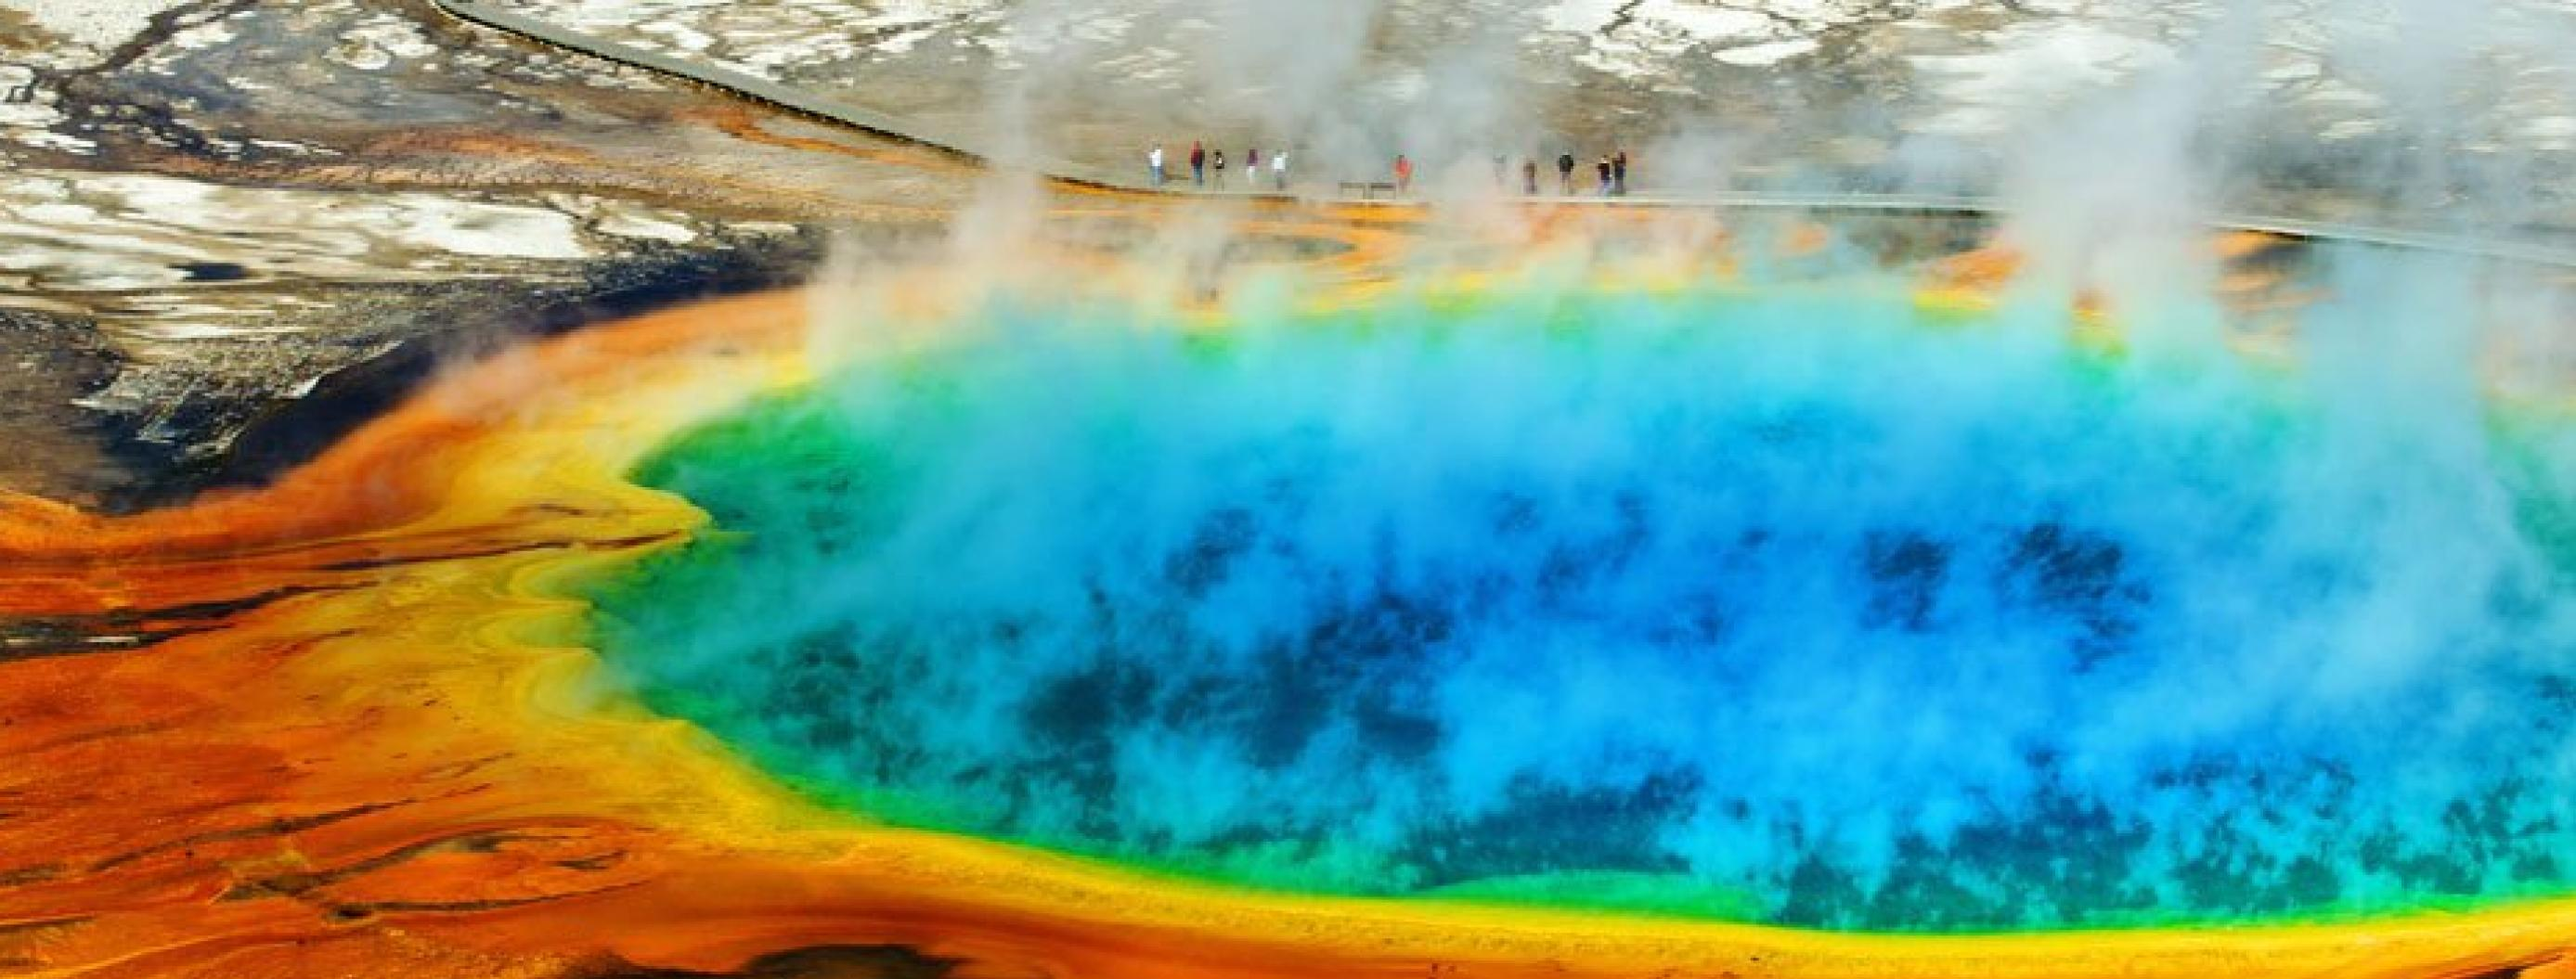 NASA's $3.5 Billion Idea Could Save the Earth from a Supervolcano Apocalypse